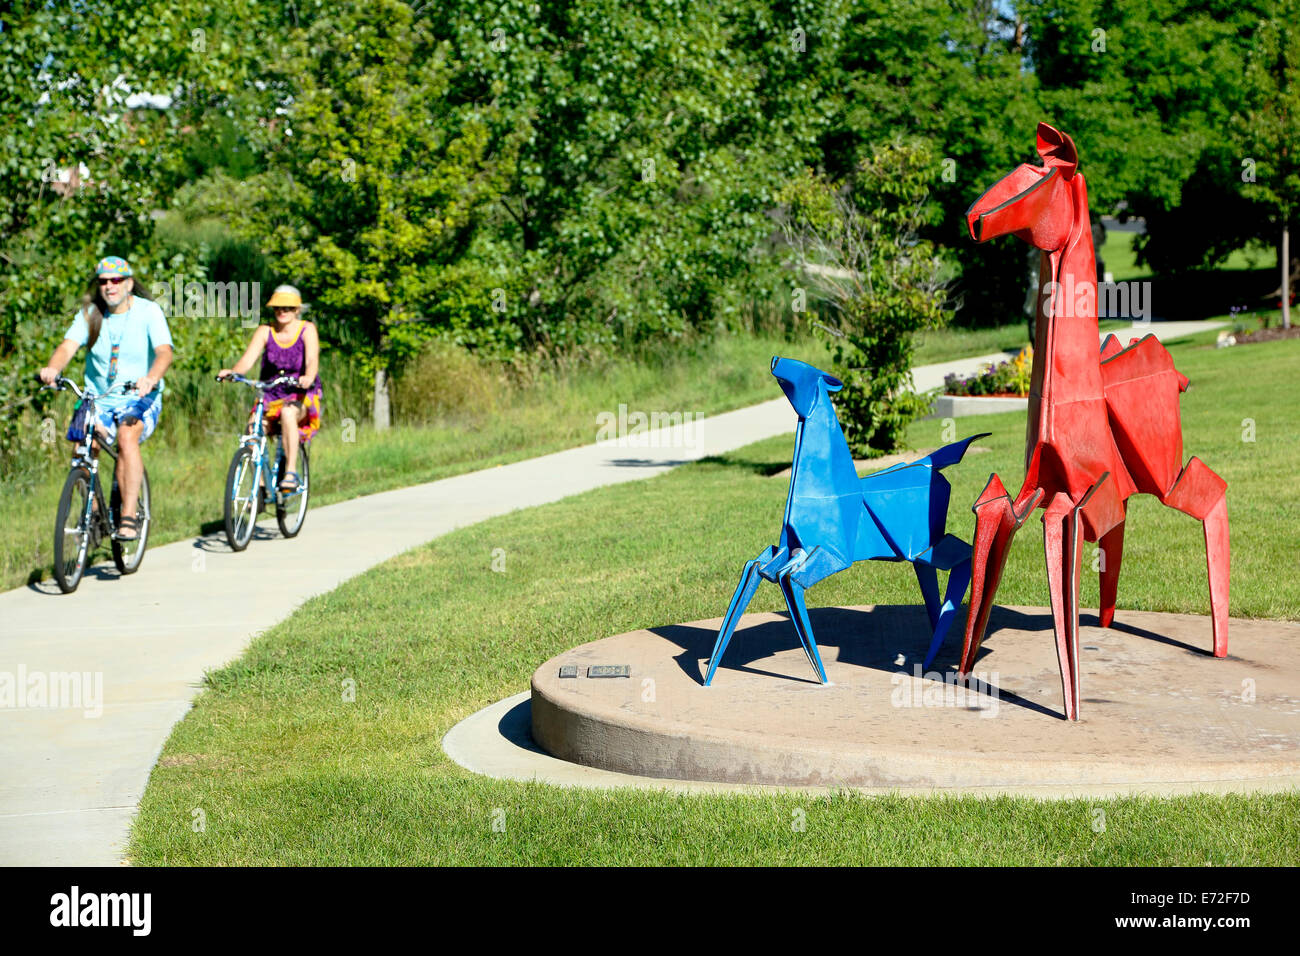 'Red and Blue Pony' sculpture, by Kevin Box, and bicyclists on trail, Benson Sculpture Garden, Loveland, - Stock Image